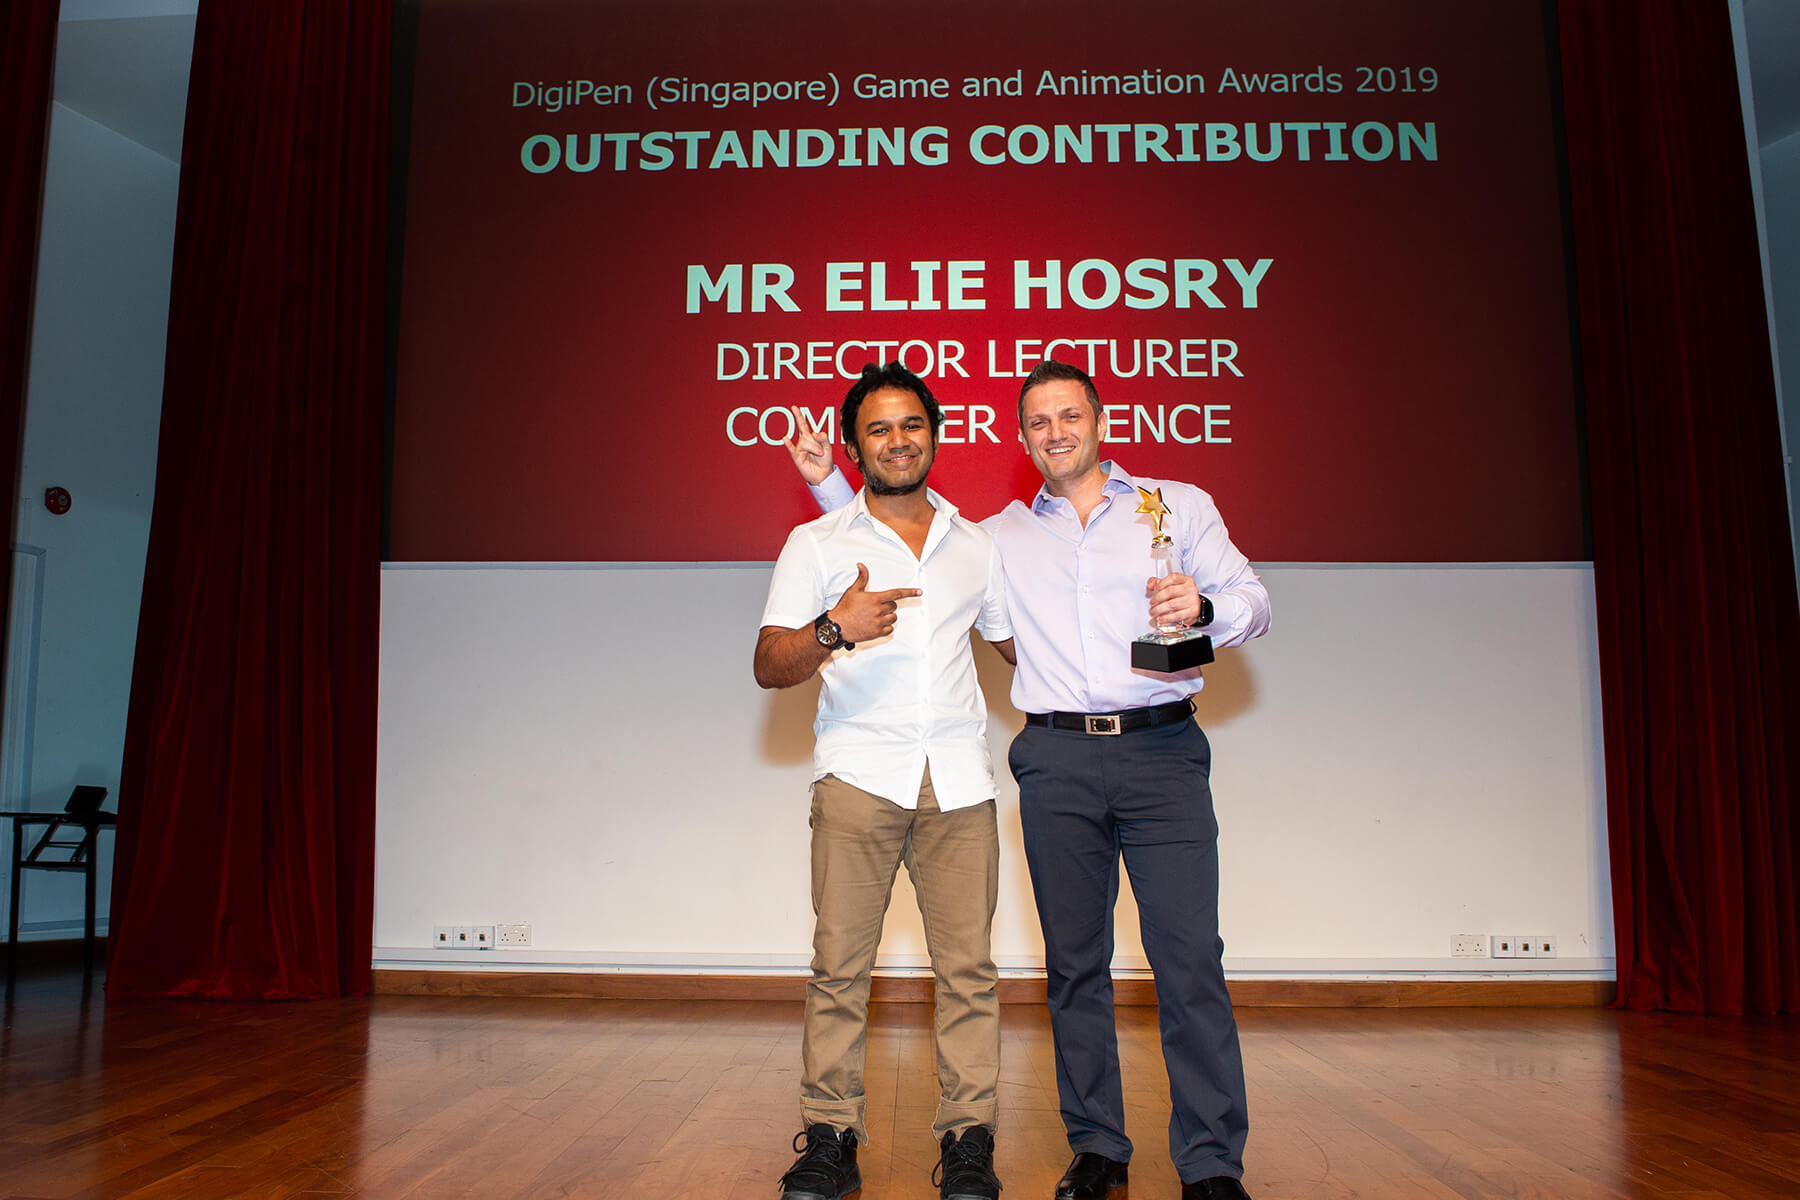 Elie Hosry accepts the Outstanding Contribution award for staff